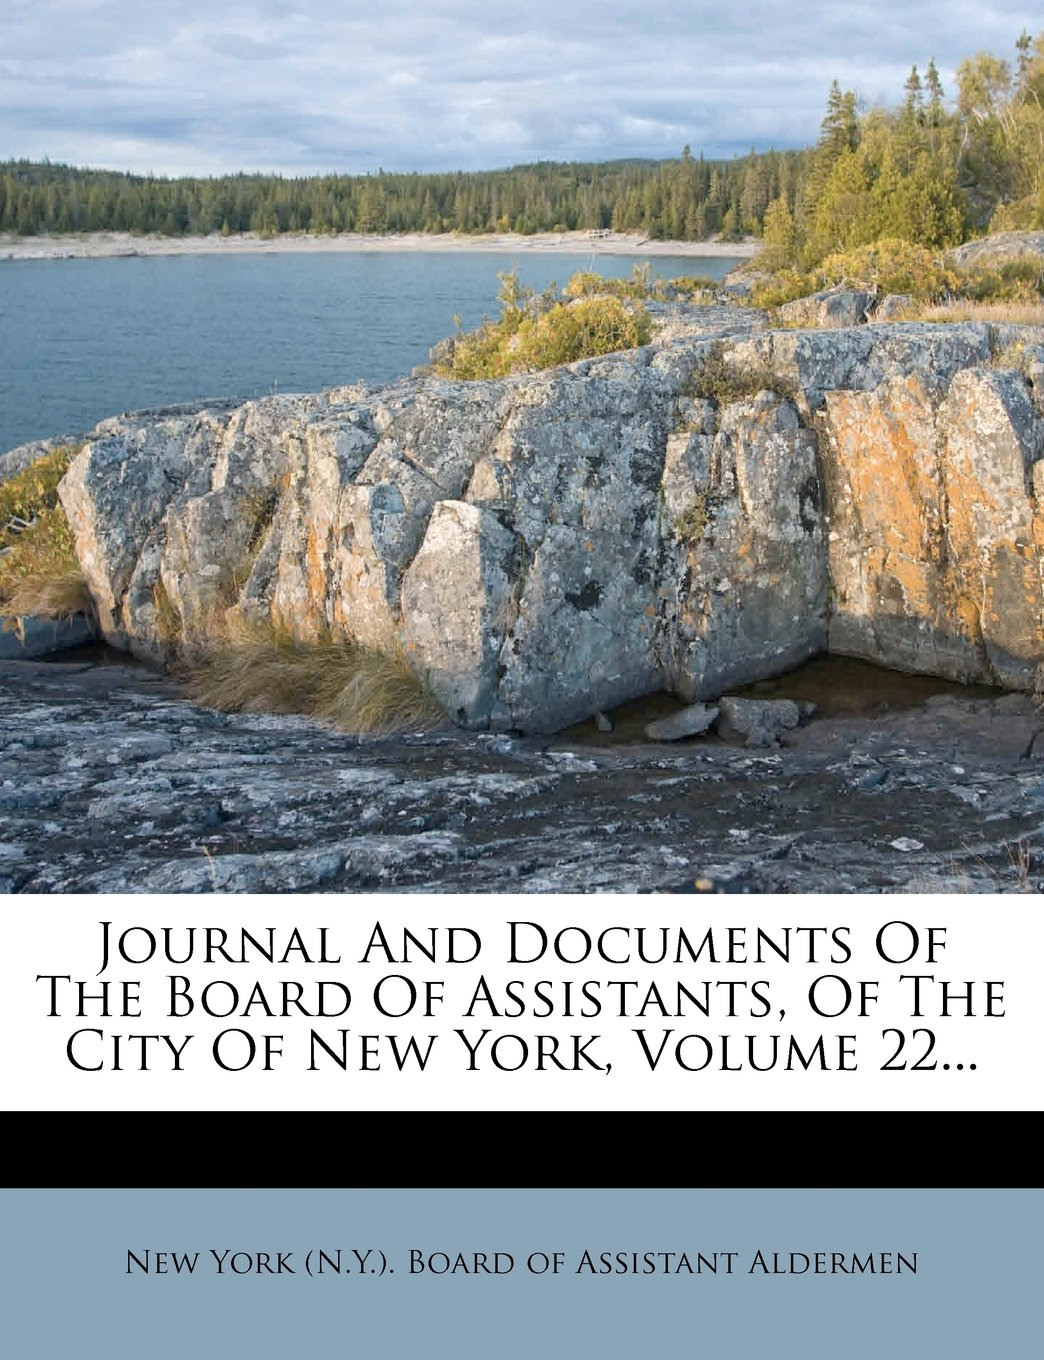 Journal and Documents of the Board of Assistants, of the City of New York, Volume 22... pdf